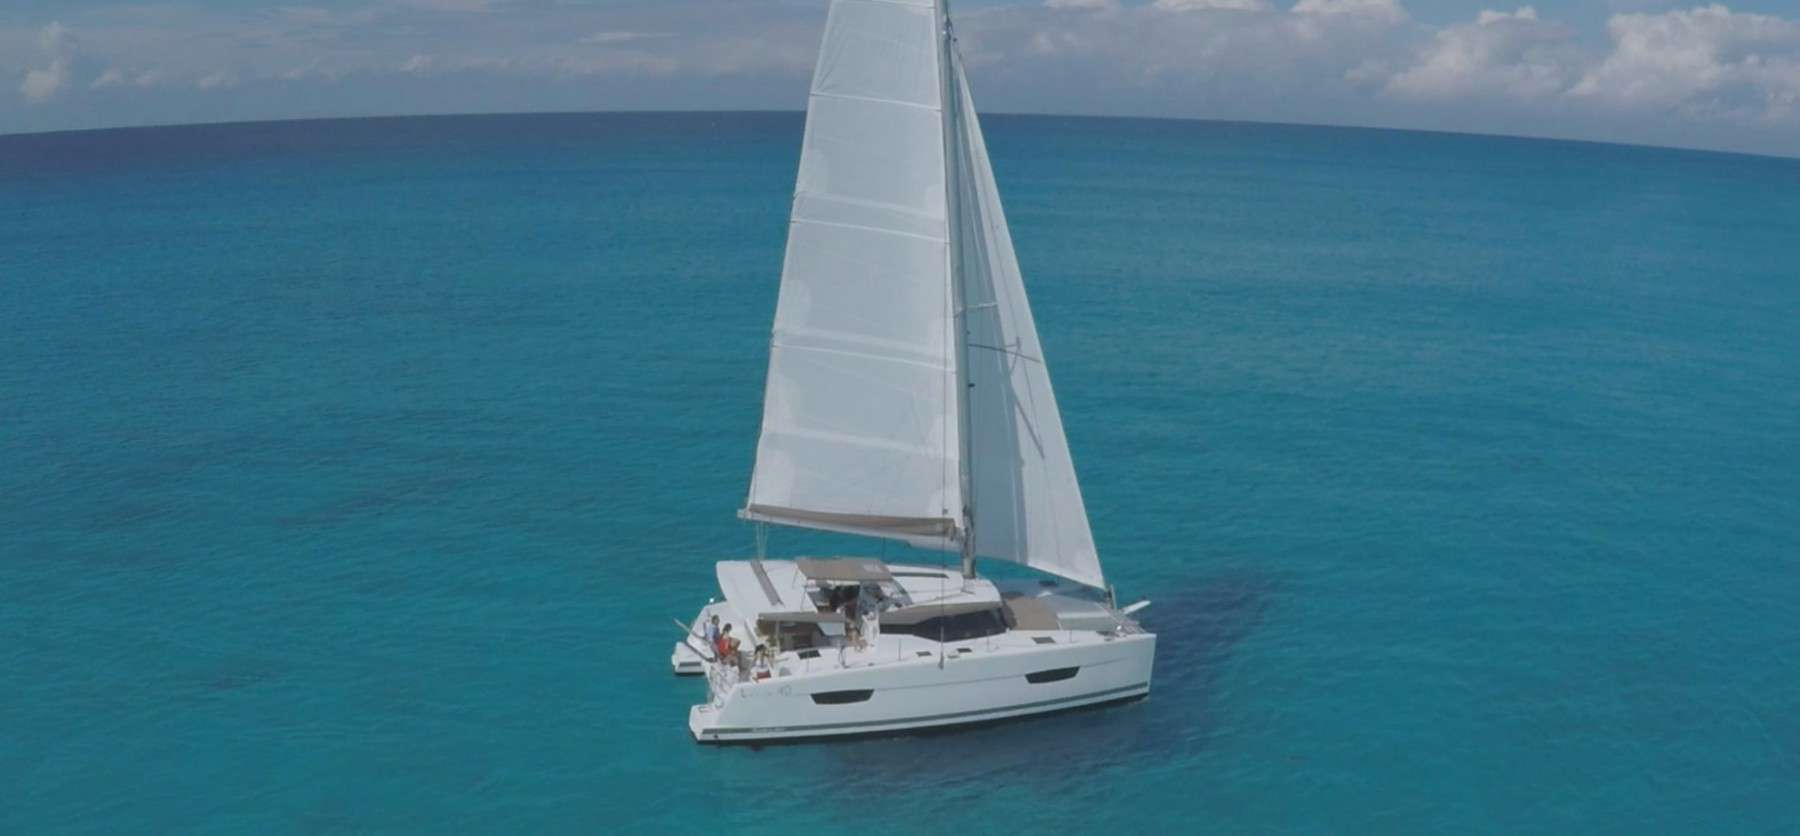 Fountaine Pajot Lucia 40 floating ahead with its sail up looking elegant in the crystal clear water